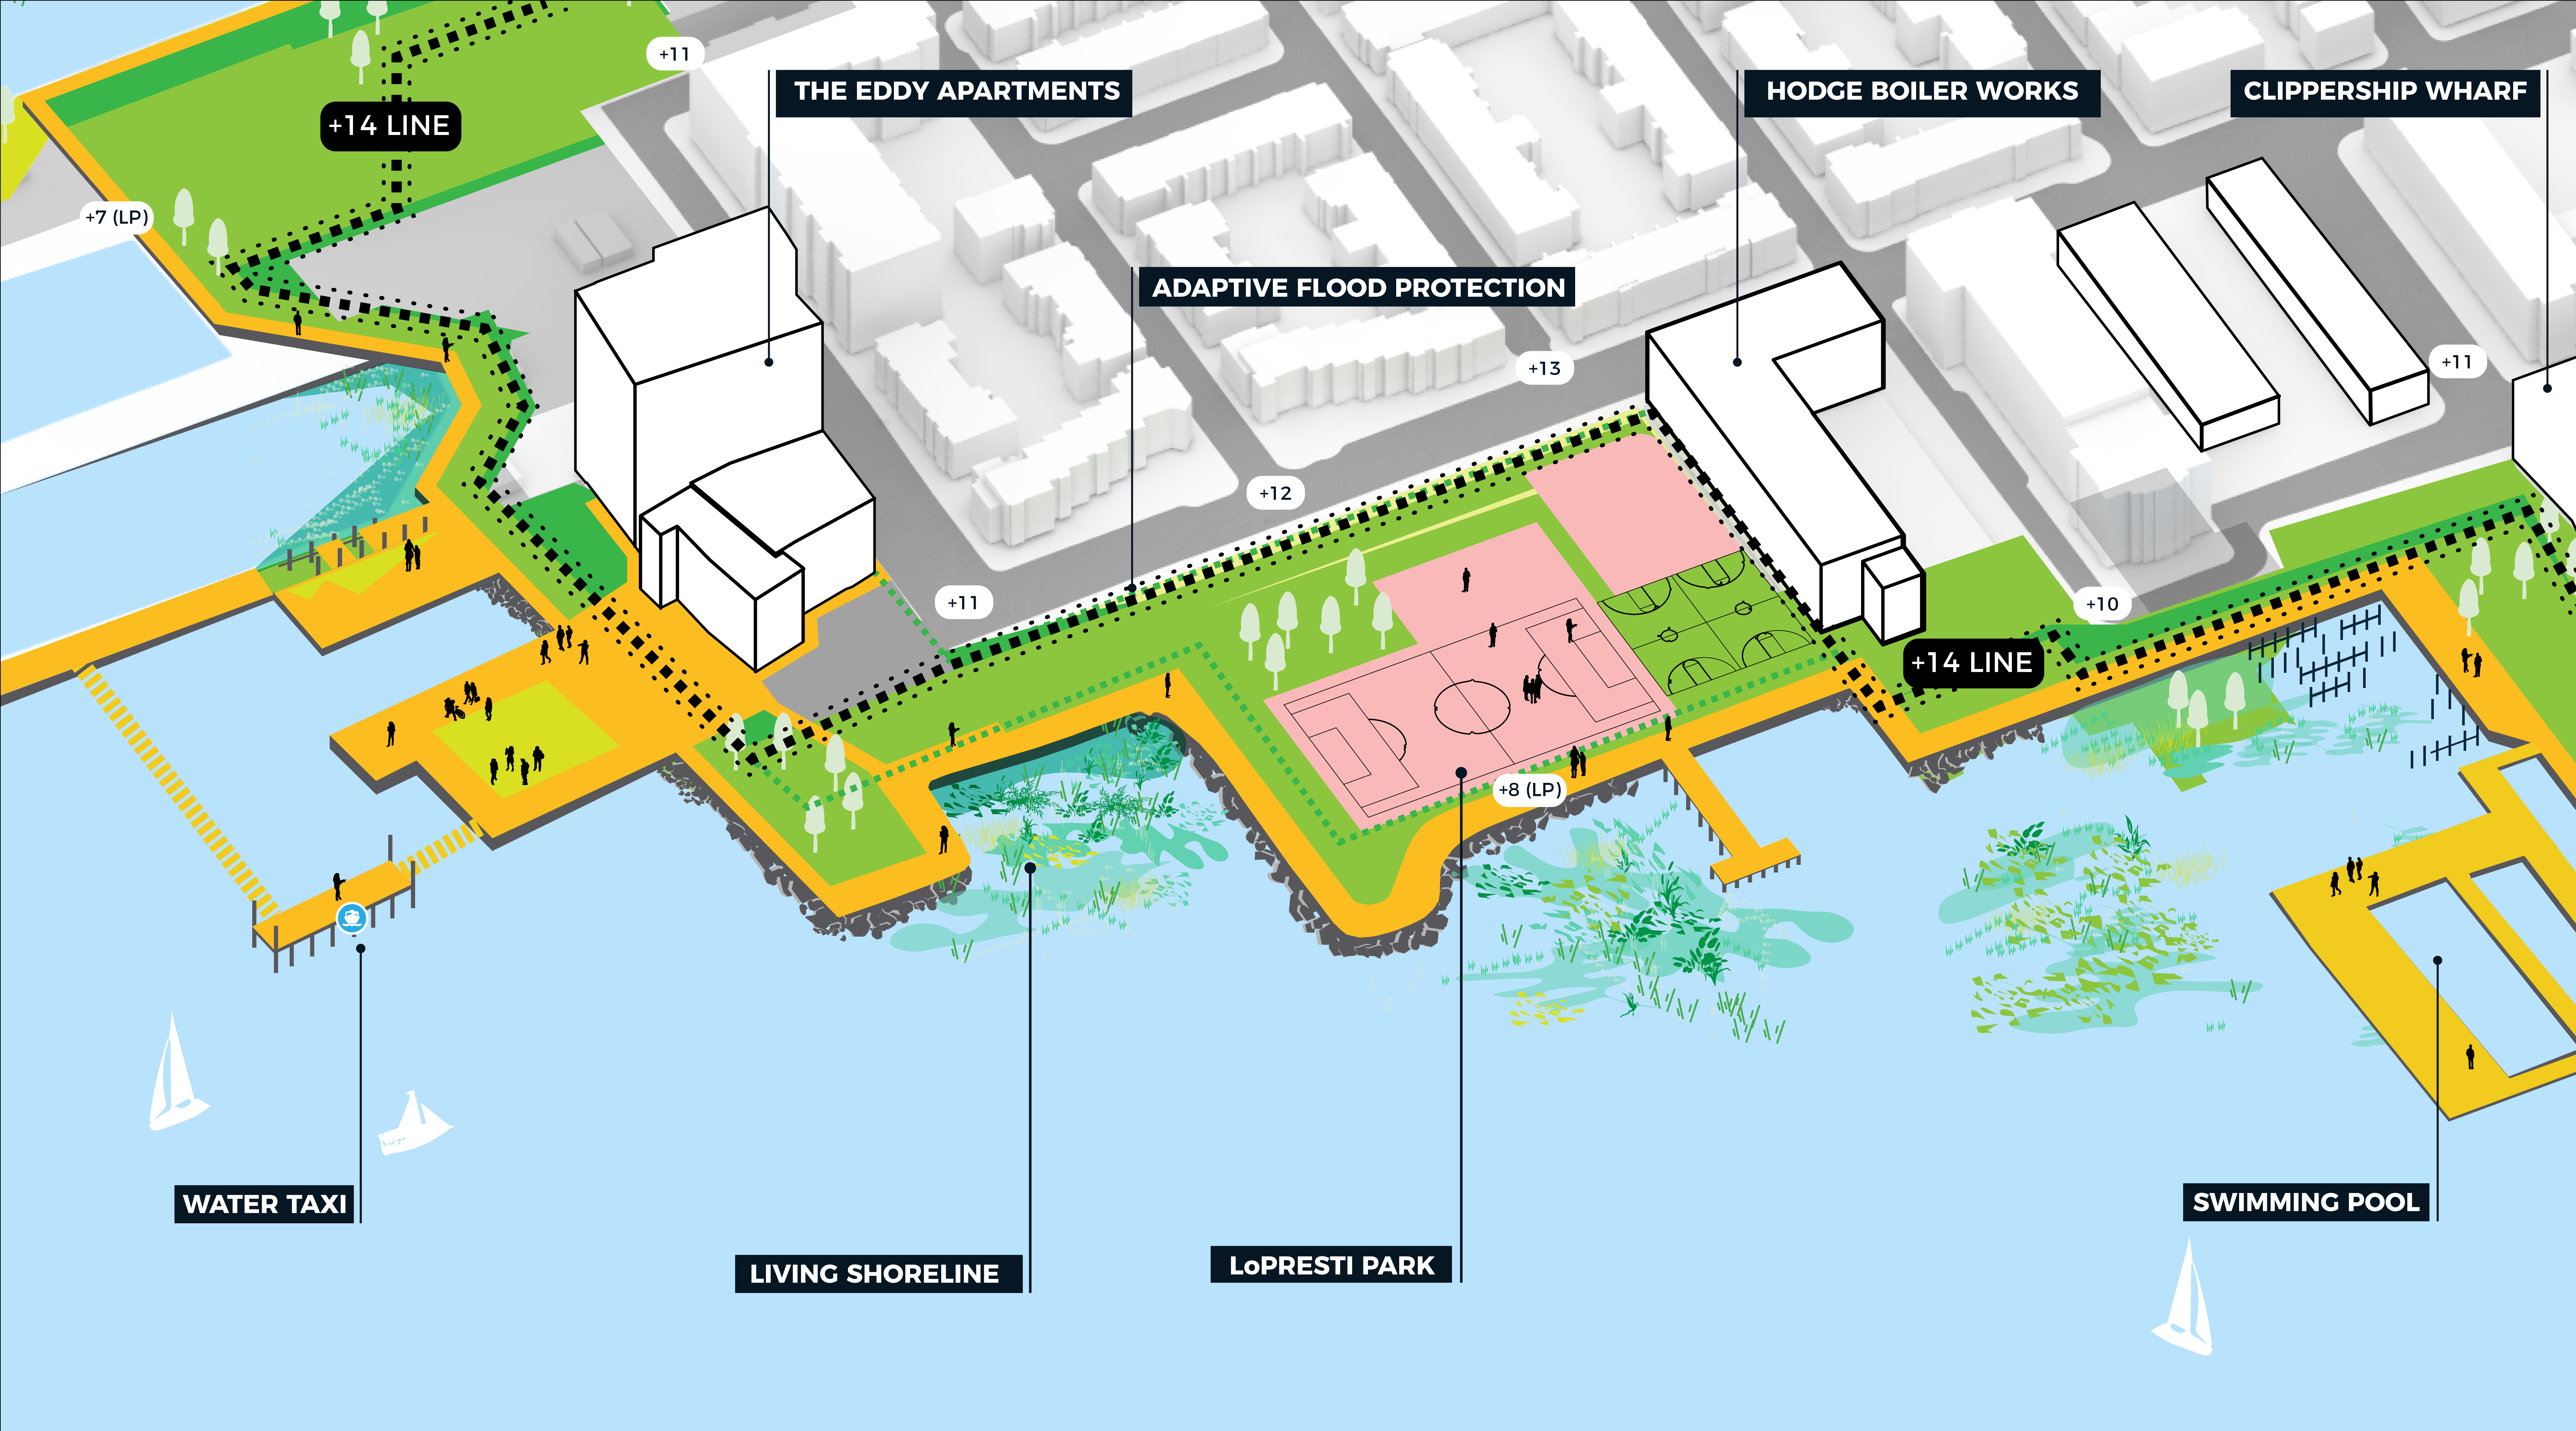 Image for  harborwalk between clippership wharf and hodge boiler works